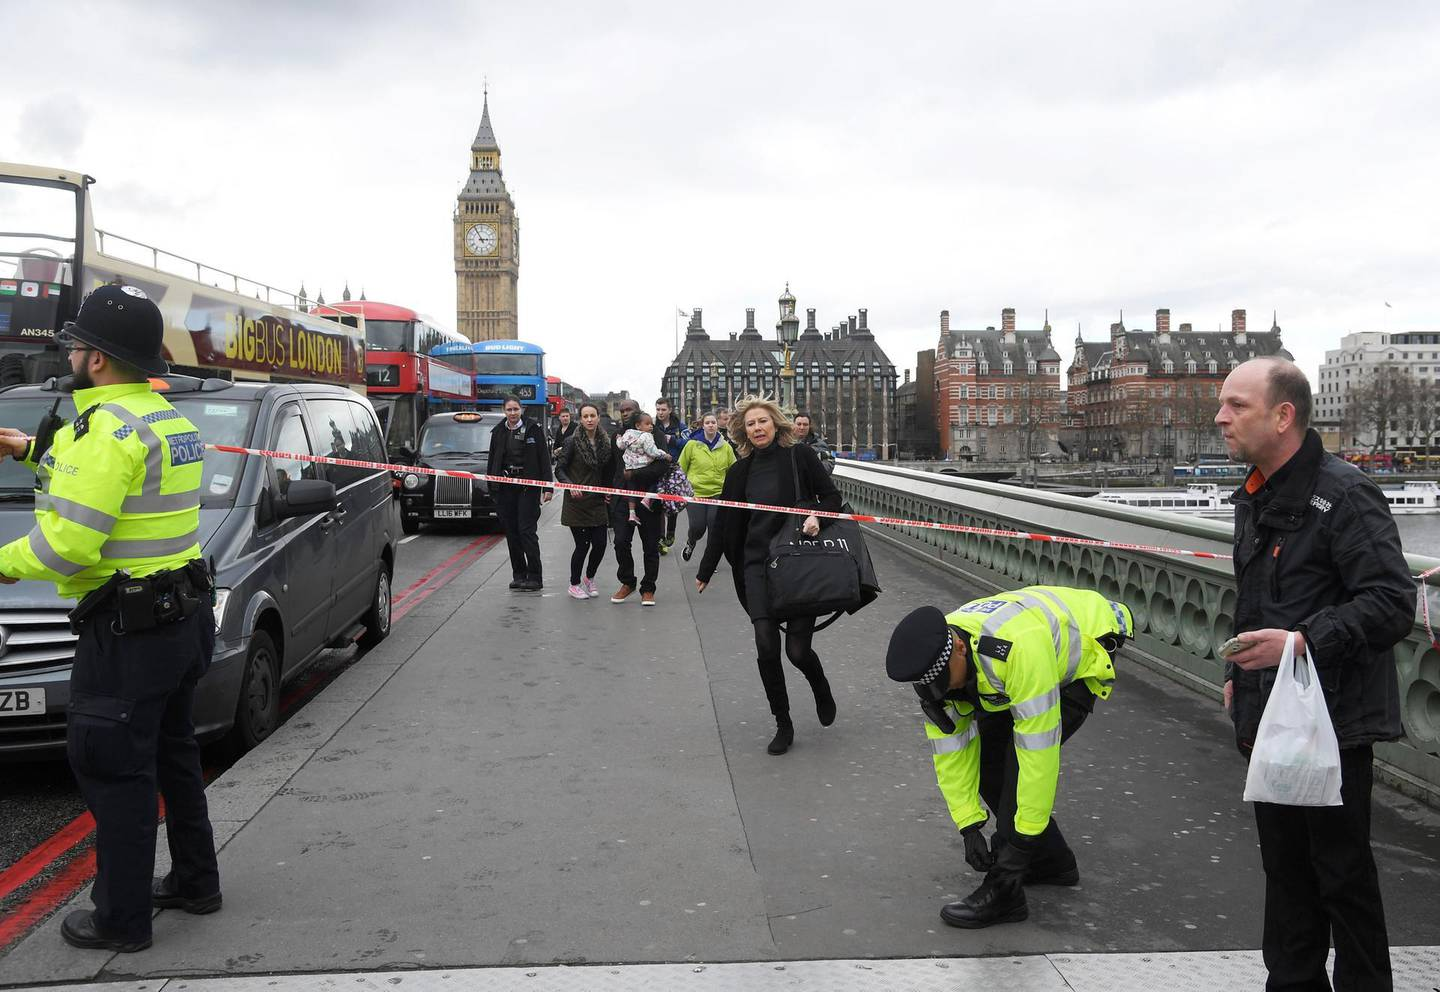 A woman ducks under a police tape after an incident on Westminster Bridge in London, March 22, 2017.  REUTERS/Toby Melville  - LR1ED3M16TMRJ